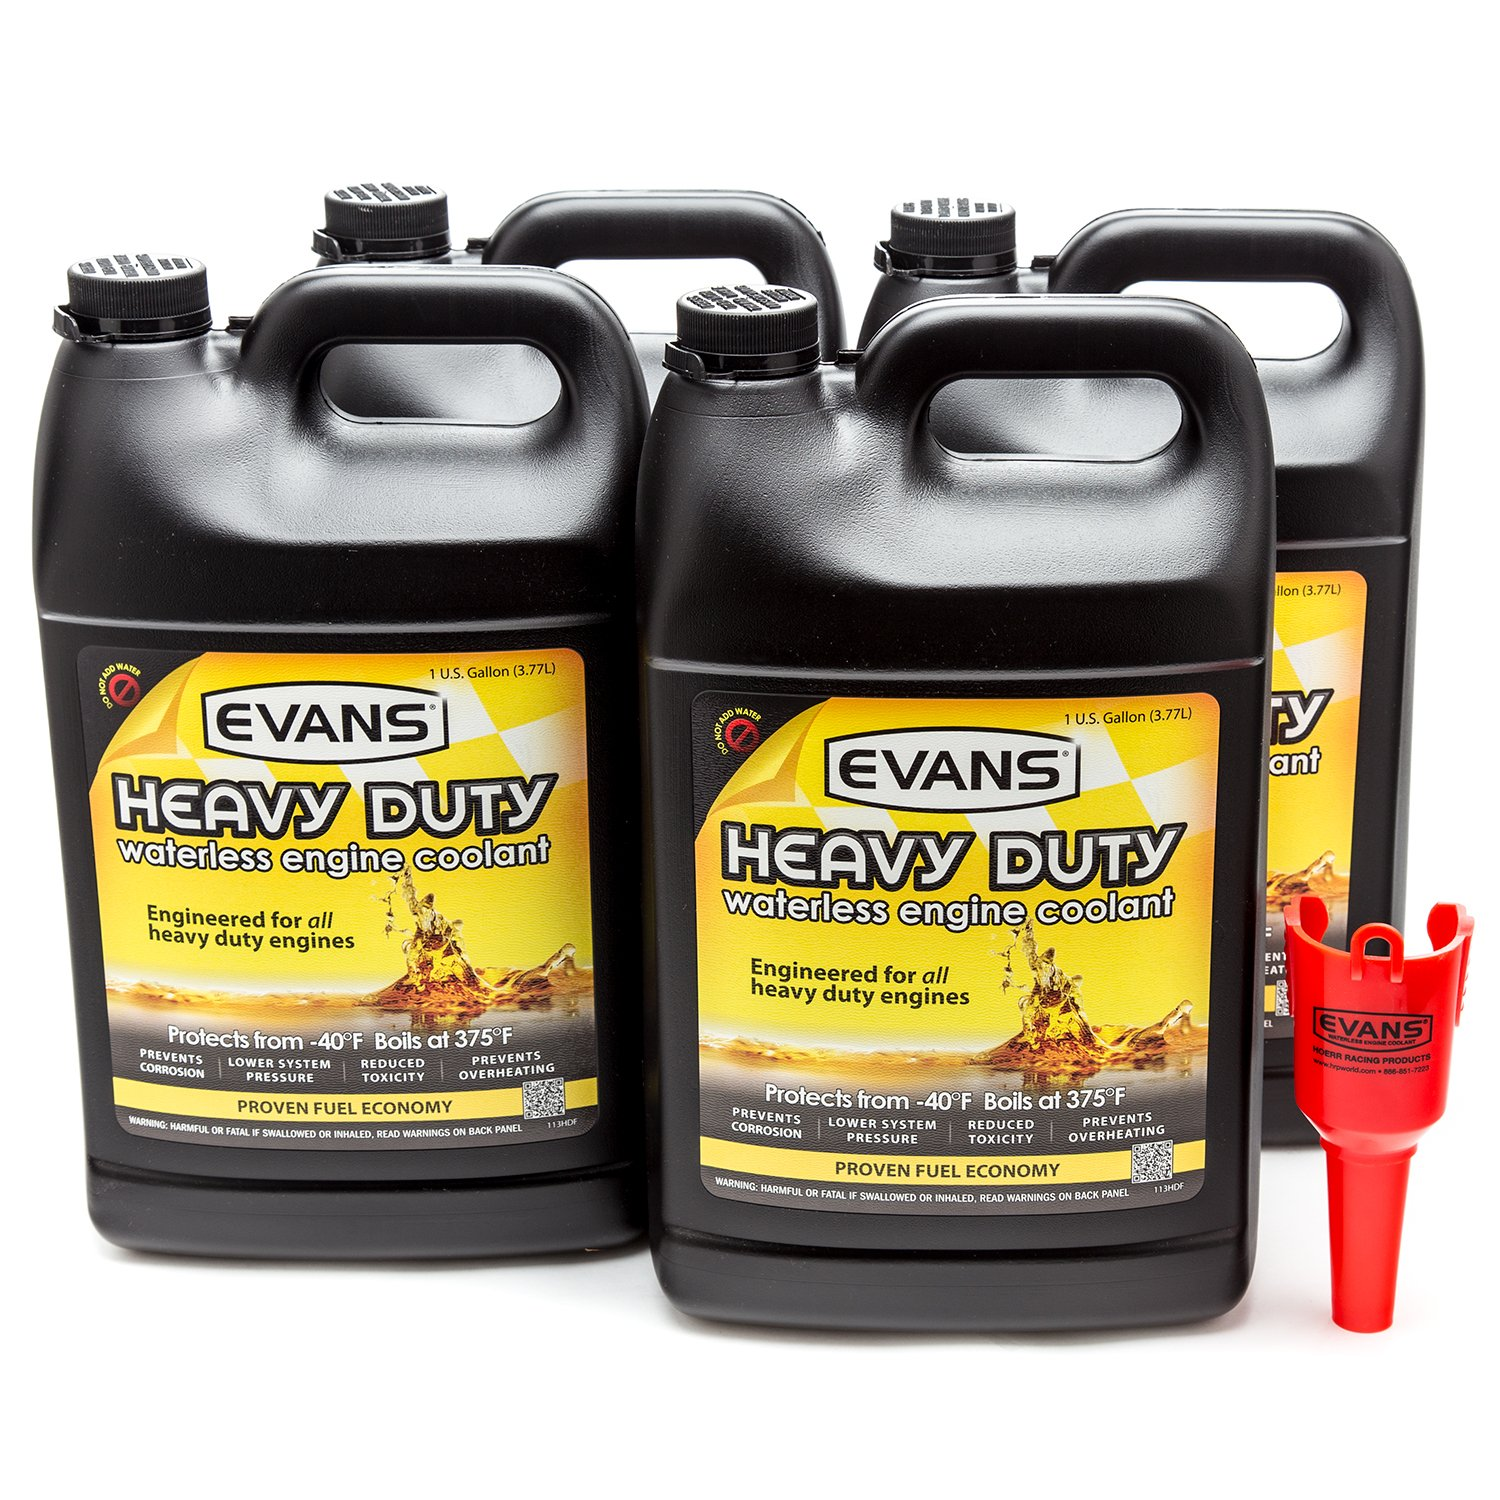 Evans Coolant EC61001 Heavy Duty Waterless Coolant, 4 Gallon Pack with Funnel